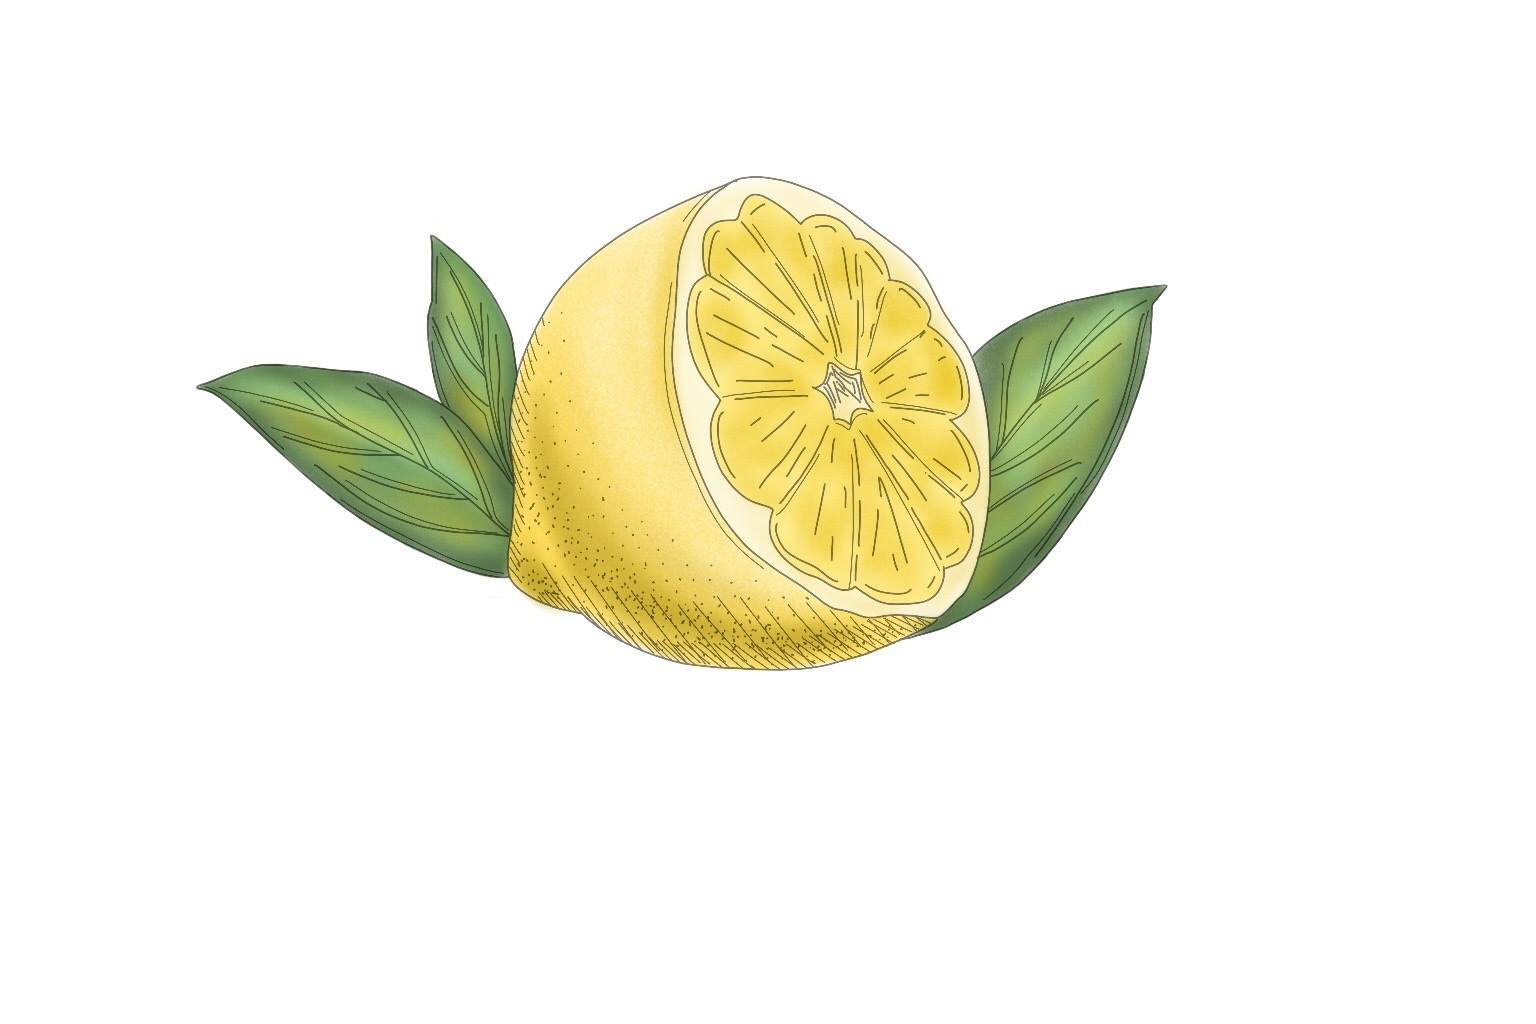 Lemon Oil - A versatile aromatherapy essential oil that has antiseptic and antibacterial properties. Lemon oil acts as an astringent/toner. It contains citric acid that has vitamin B and vitamin C, which helps to brighten skin complexion. Lemon oil provides a natural fresh scent in the Clay Mask.